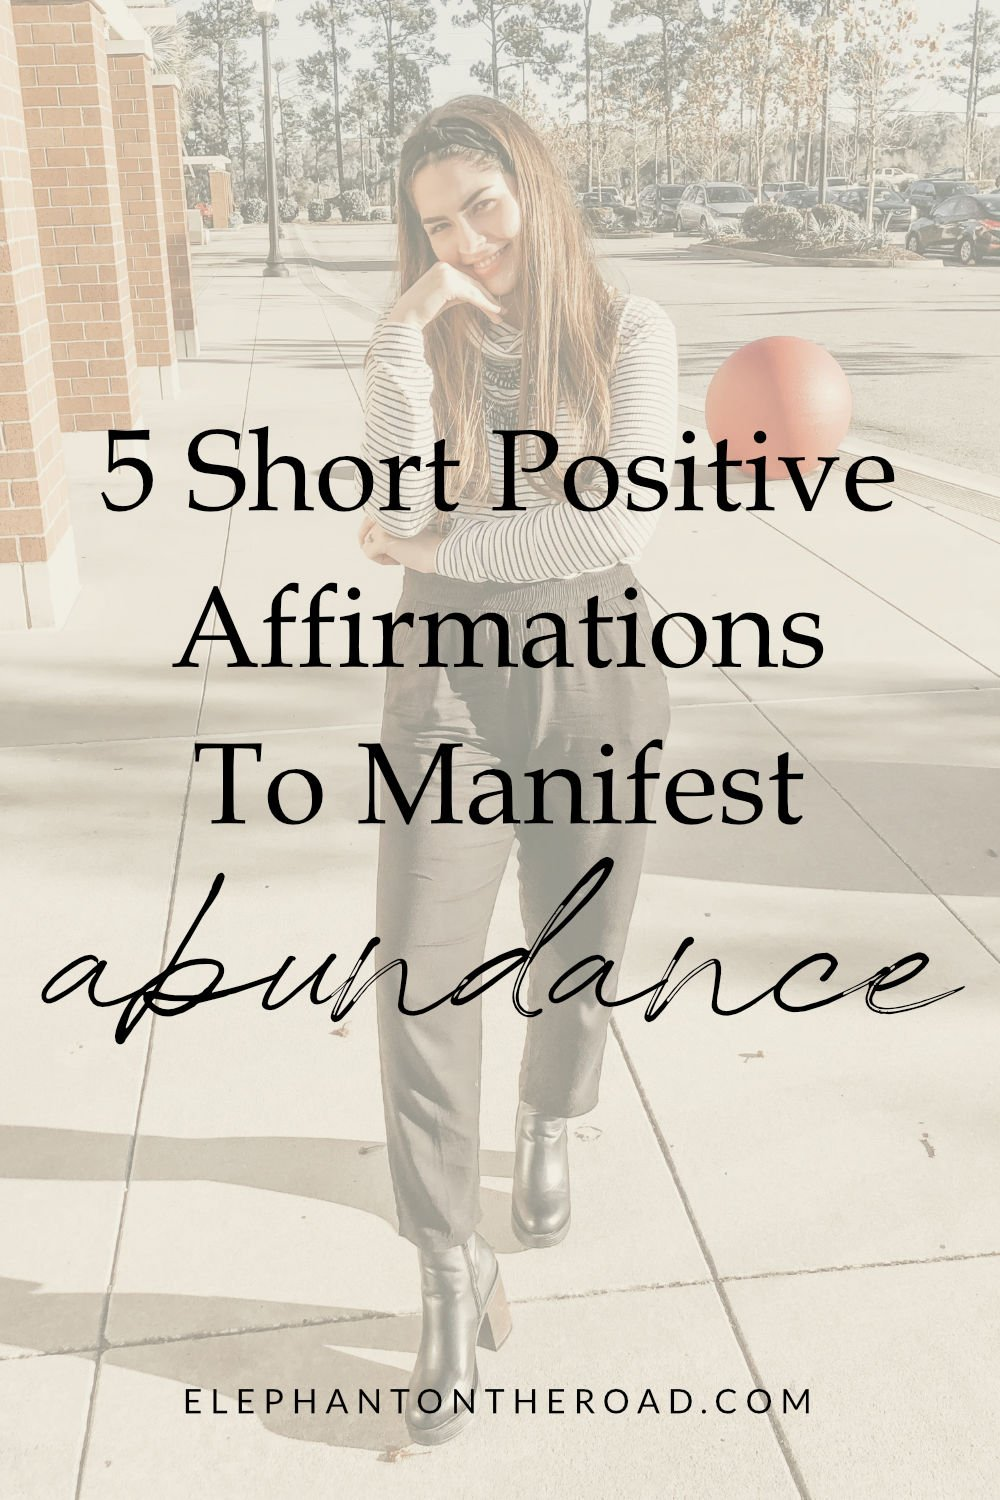 5 Short Positive Affirmations To Manifest Abundance. Affirmations To Manifest Abundance. Daily Positive Affirmations. Abundance Affirmations. Affirmations for Abundance. Short Affirmations. Short Positive Affirmations. Short Positive Affirmations. Elephant on the Road.